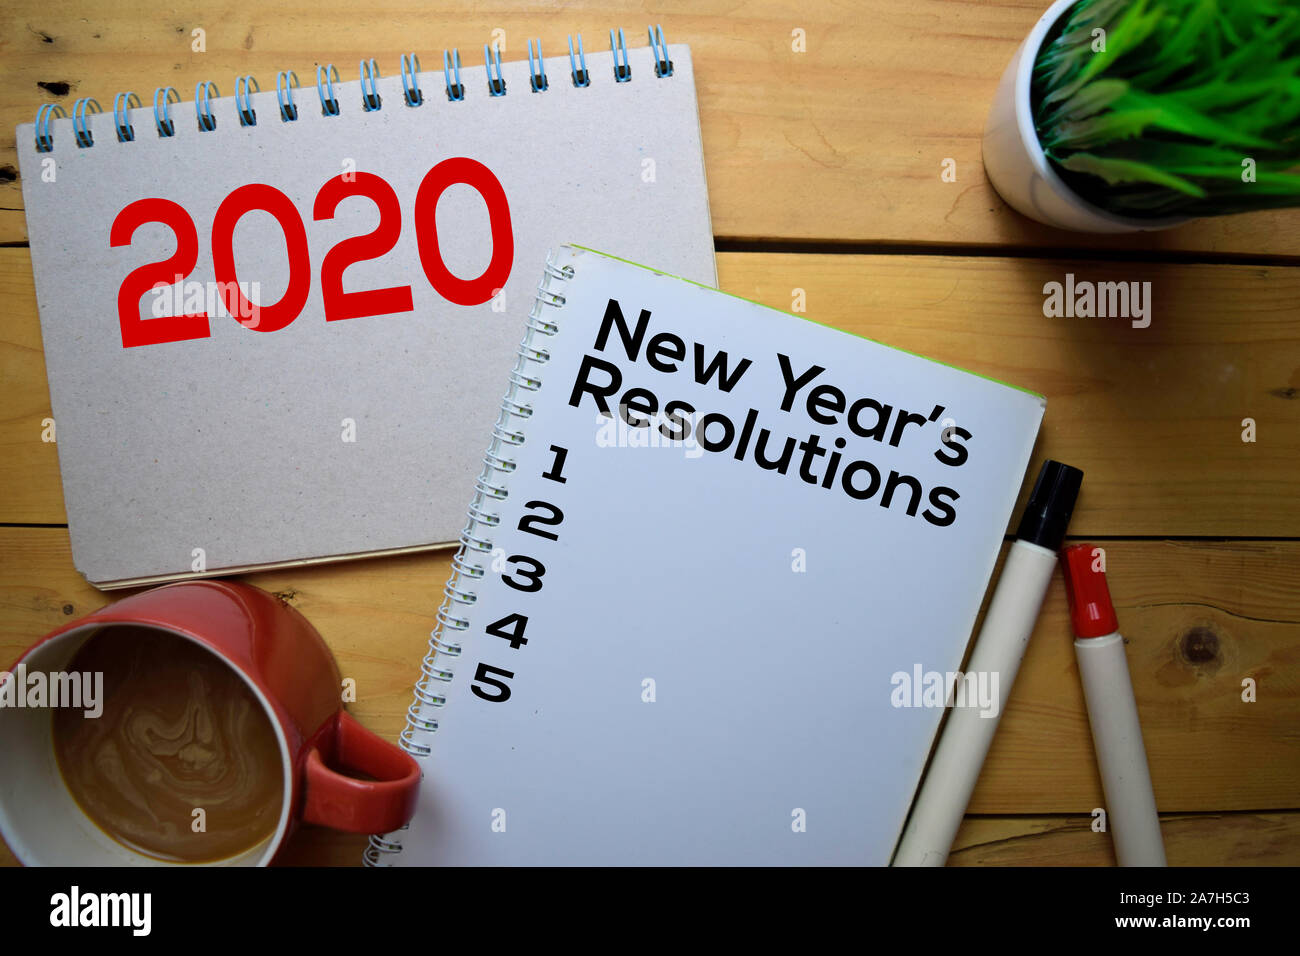 2020 New Year S Resolutions Write On The Book With Wooden Table Background Stock Photo Alamy